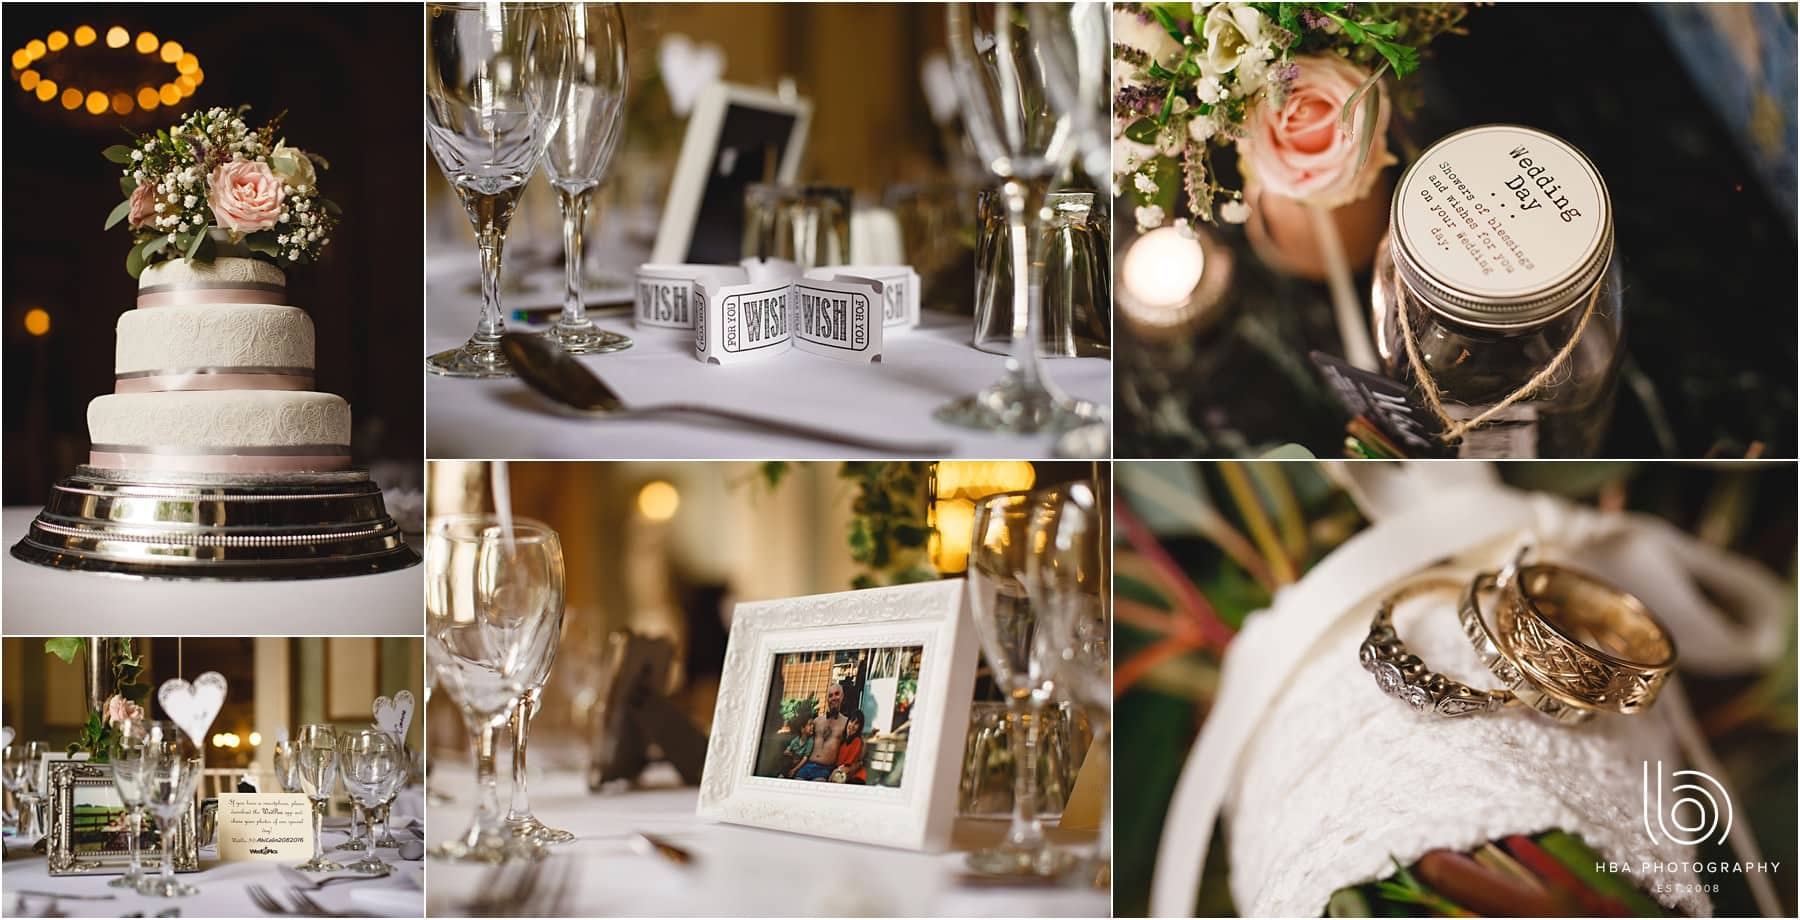 wedding favours on the tables